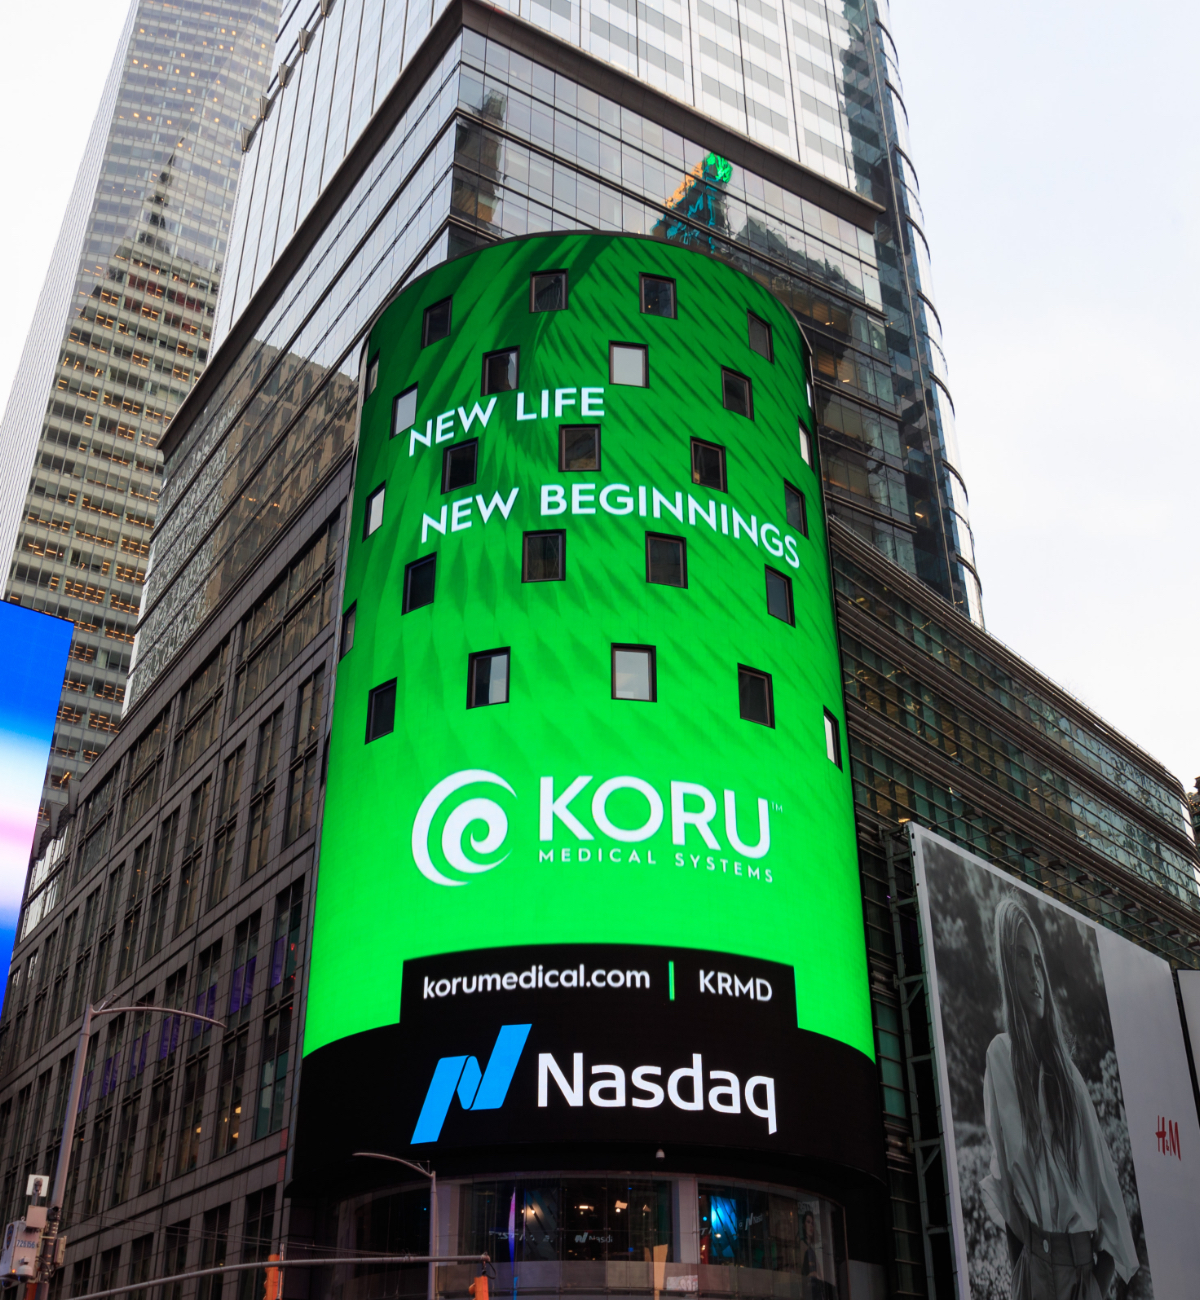 Koru Medical Systems advertisment on a big digital screen on the side of a building